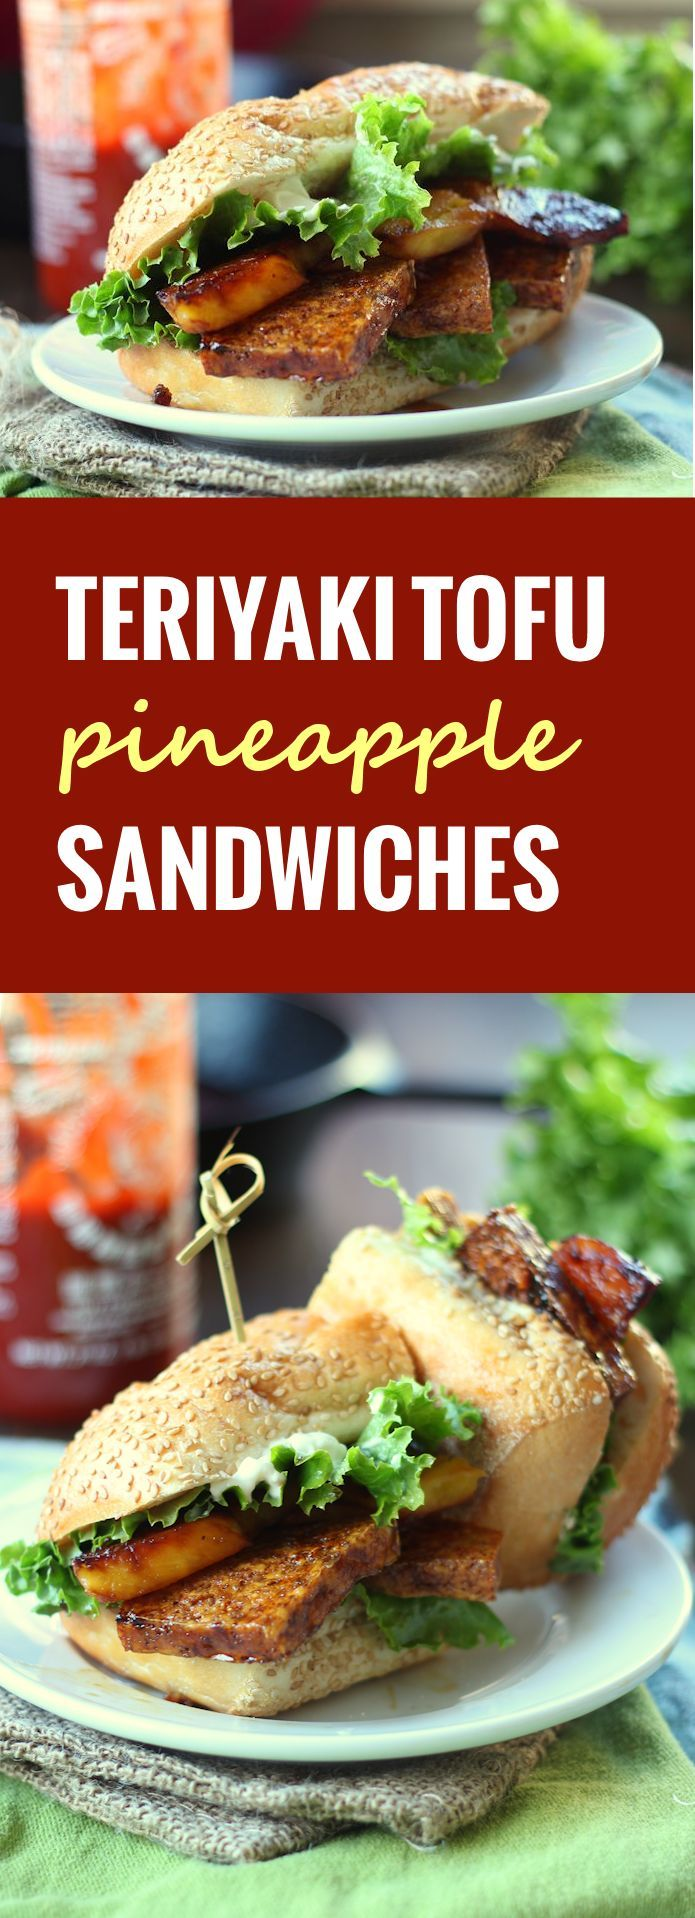 Pineapple Teriyaki Tofu Sandwiches - Connoisseurus Veg